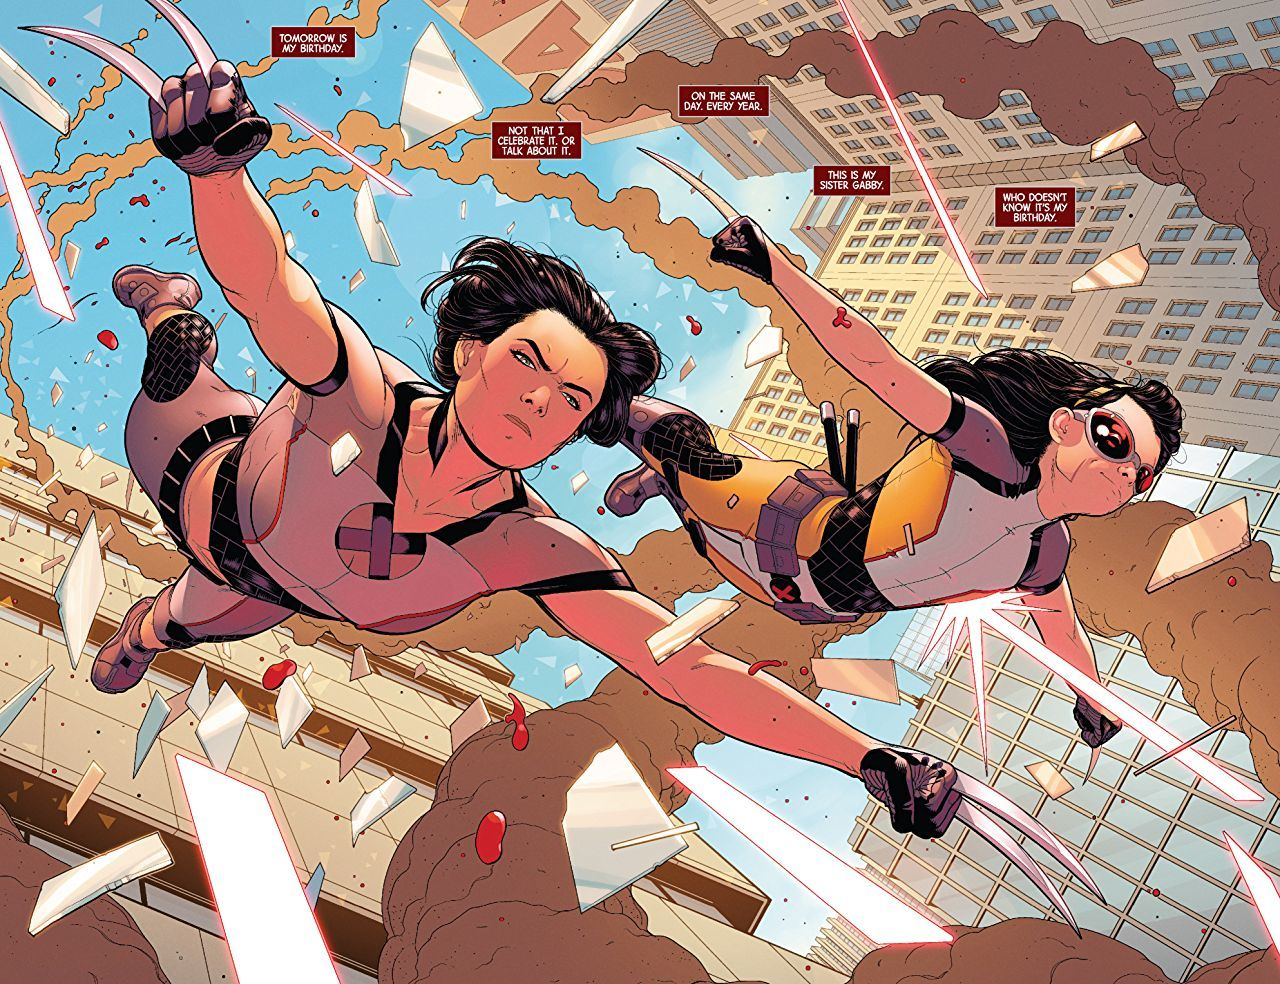 X-23 #1 art by Juann Cabal and Nolan Woodard